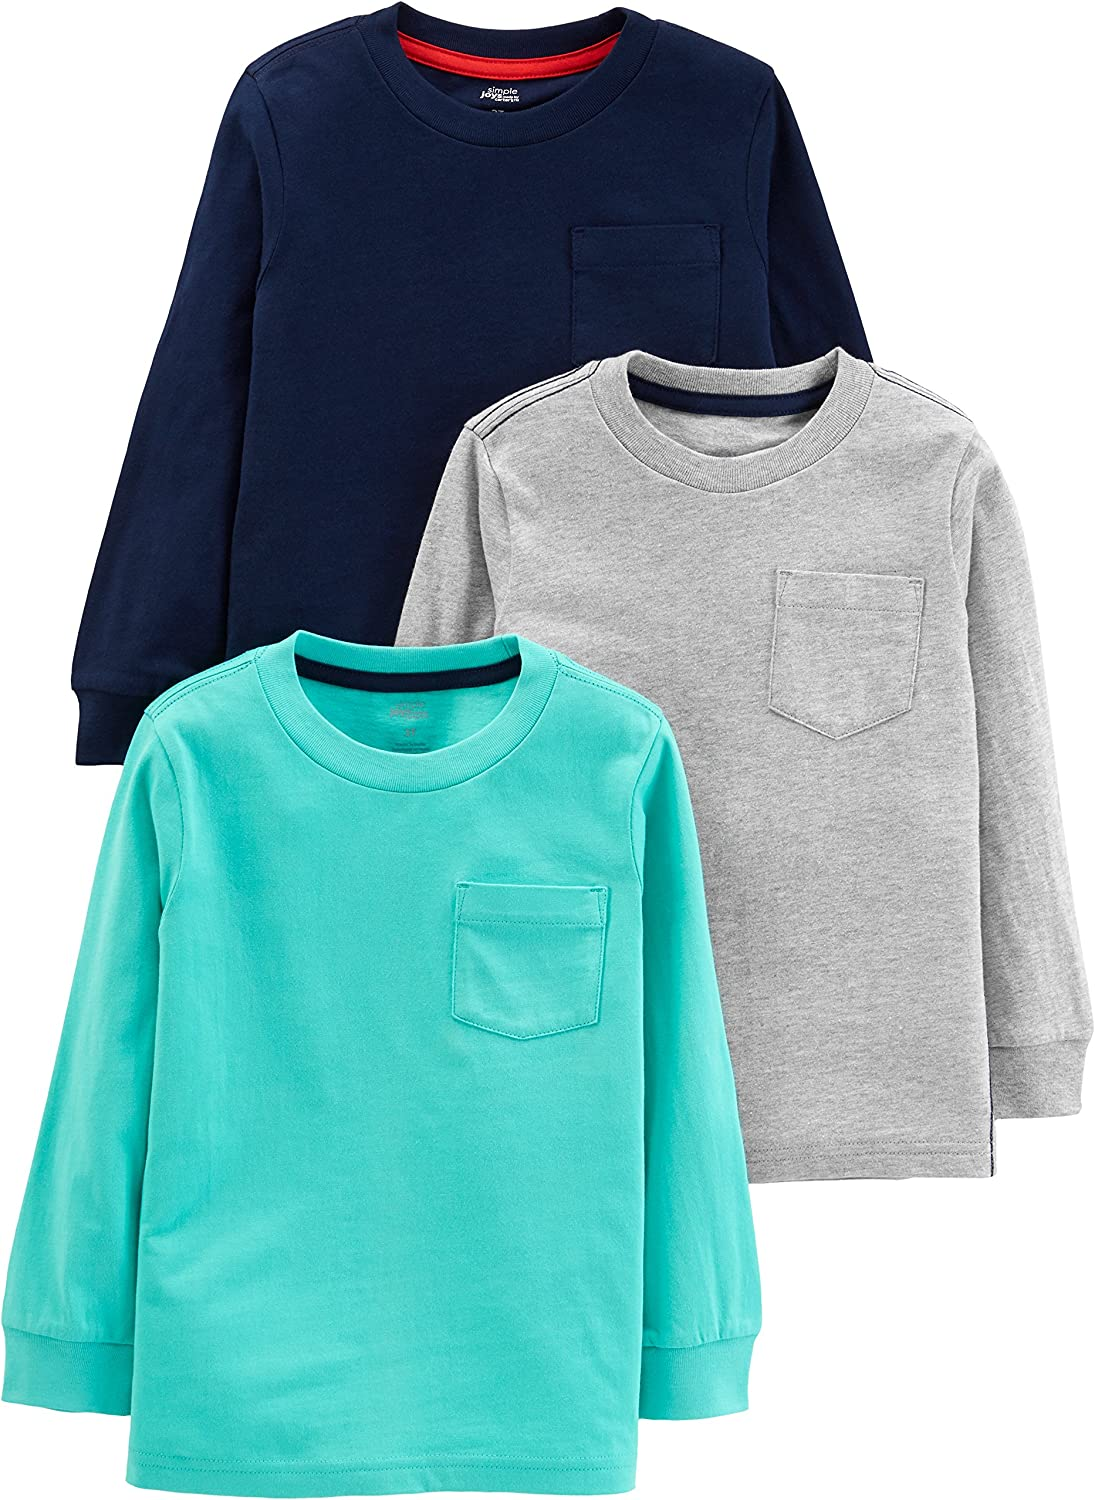 Simple Joys by Carter's Toddler Boys' 3-Pack Solid Pocket Long-Sleeve Tee Shirts: Clothing